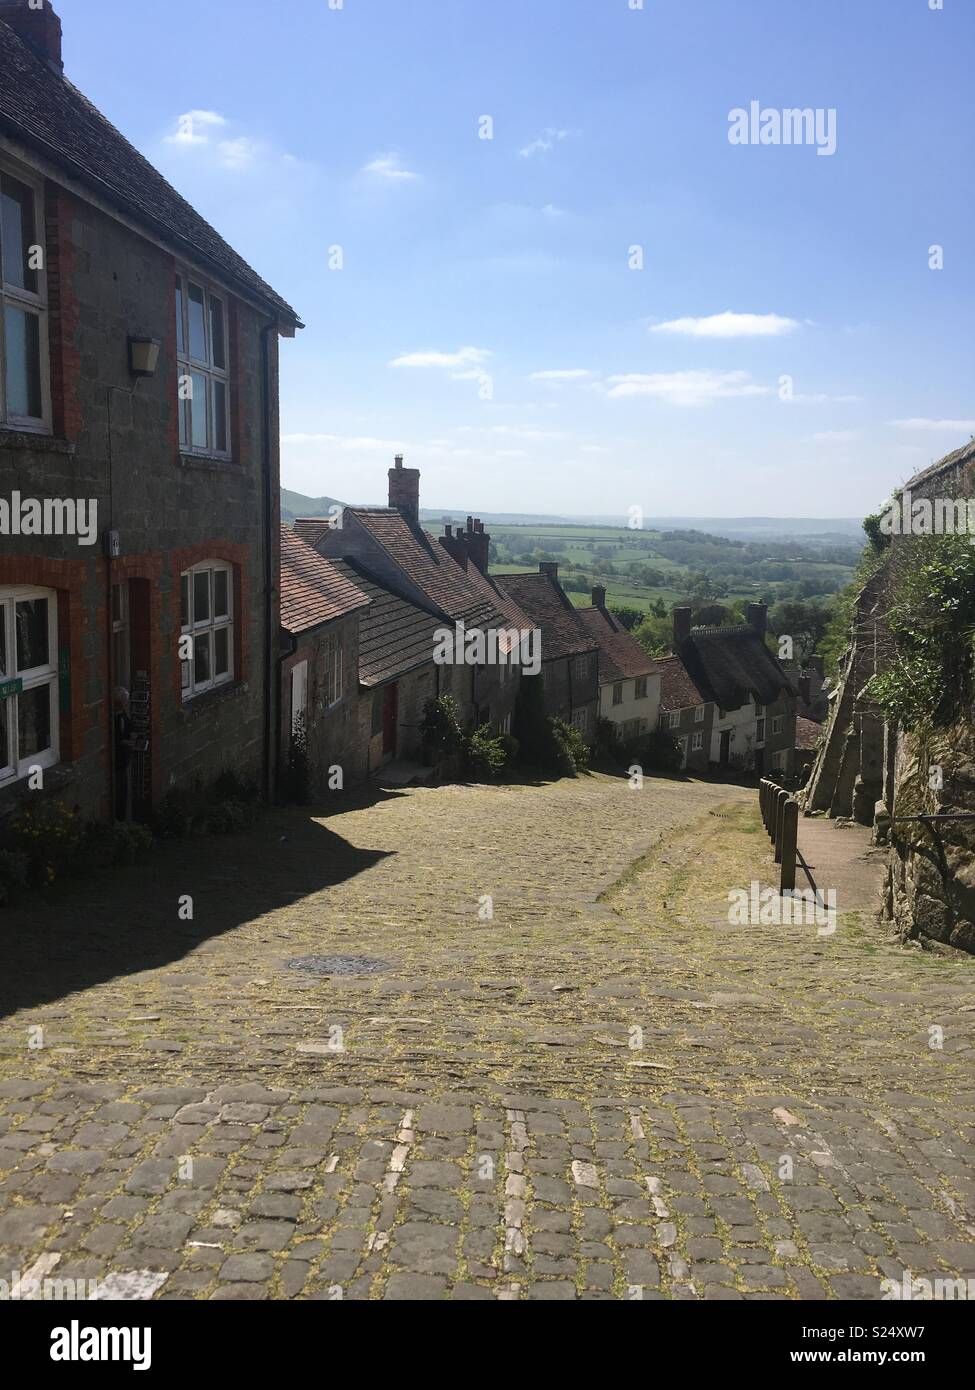 Hovis Hill from advert - Stock Image